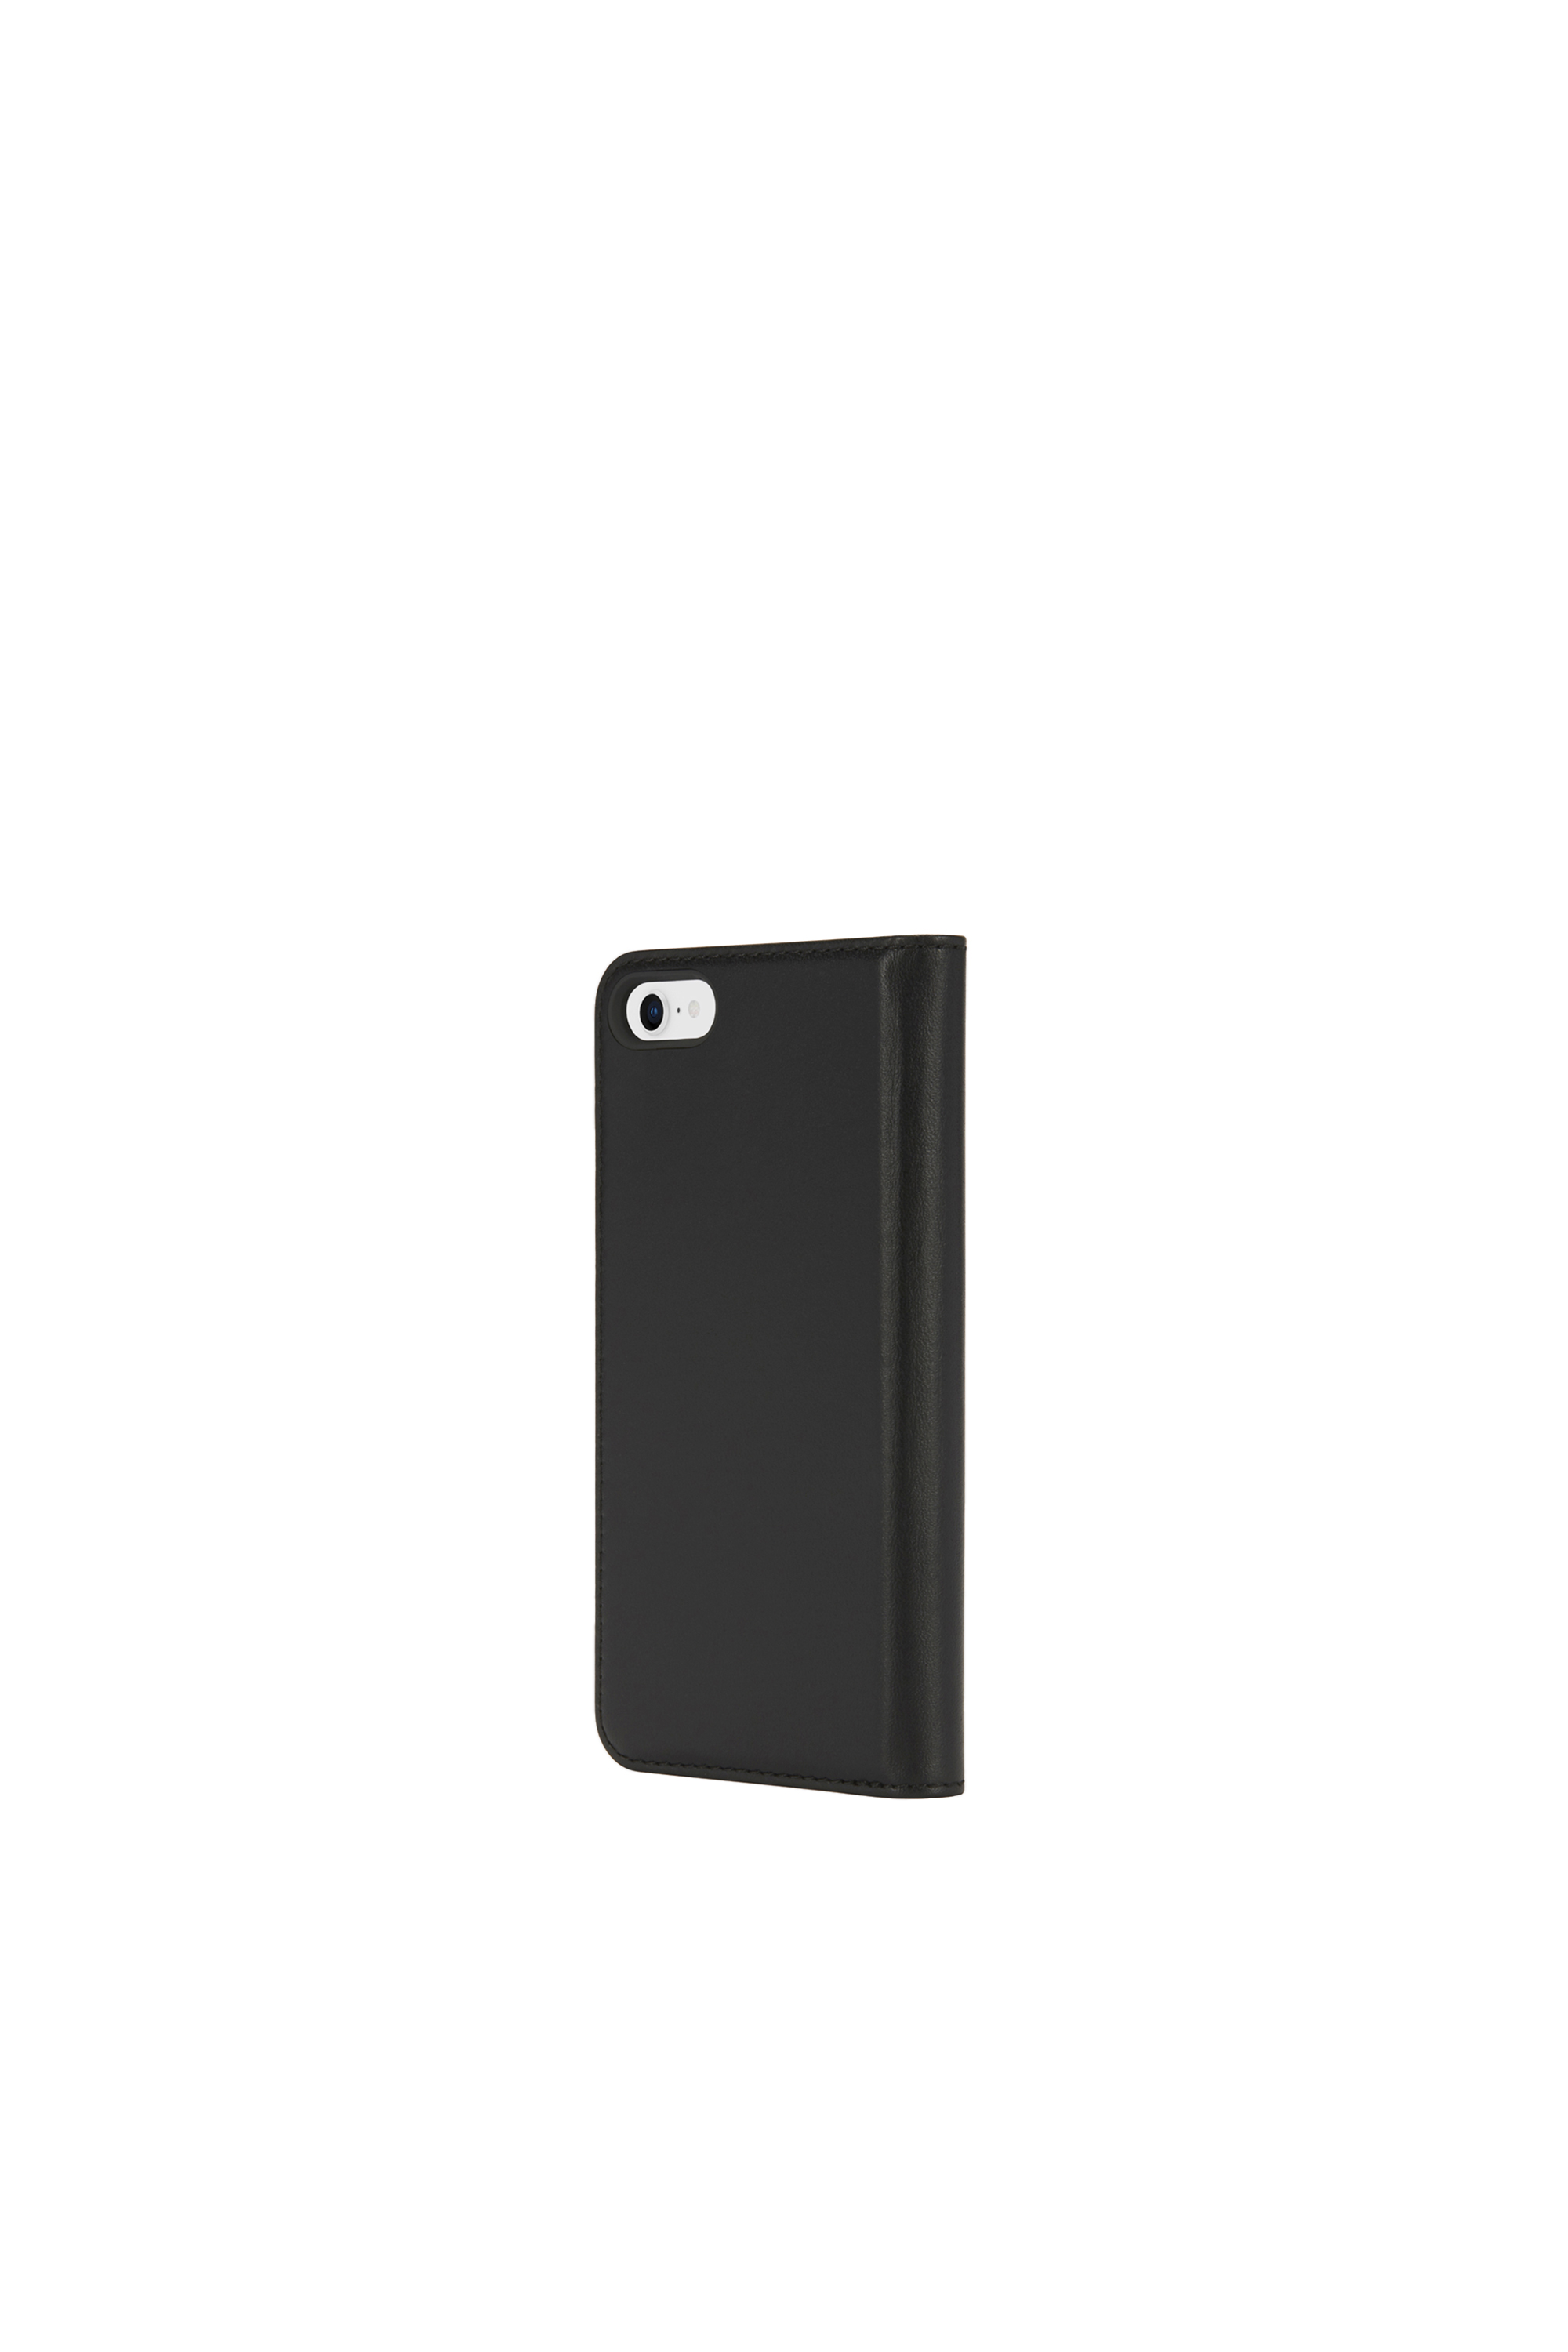 Diesel - SLIM LEATHER FOLIO IPHONE 8/7,  - Flip covers - Image 5